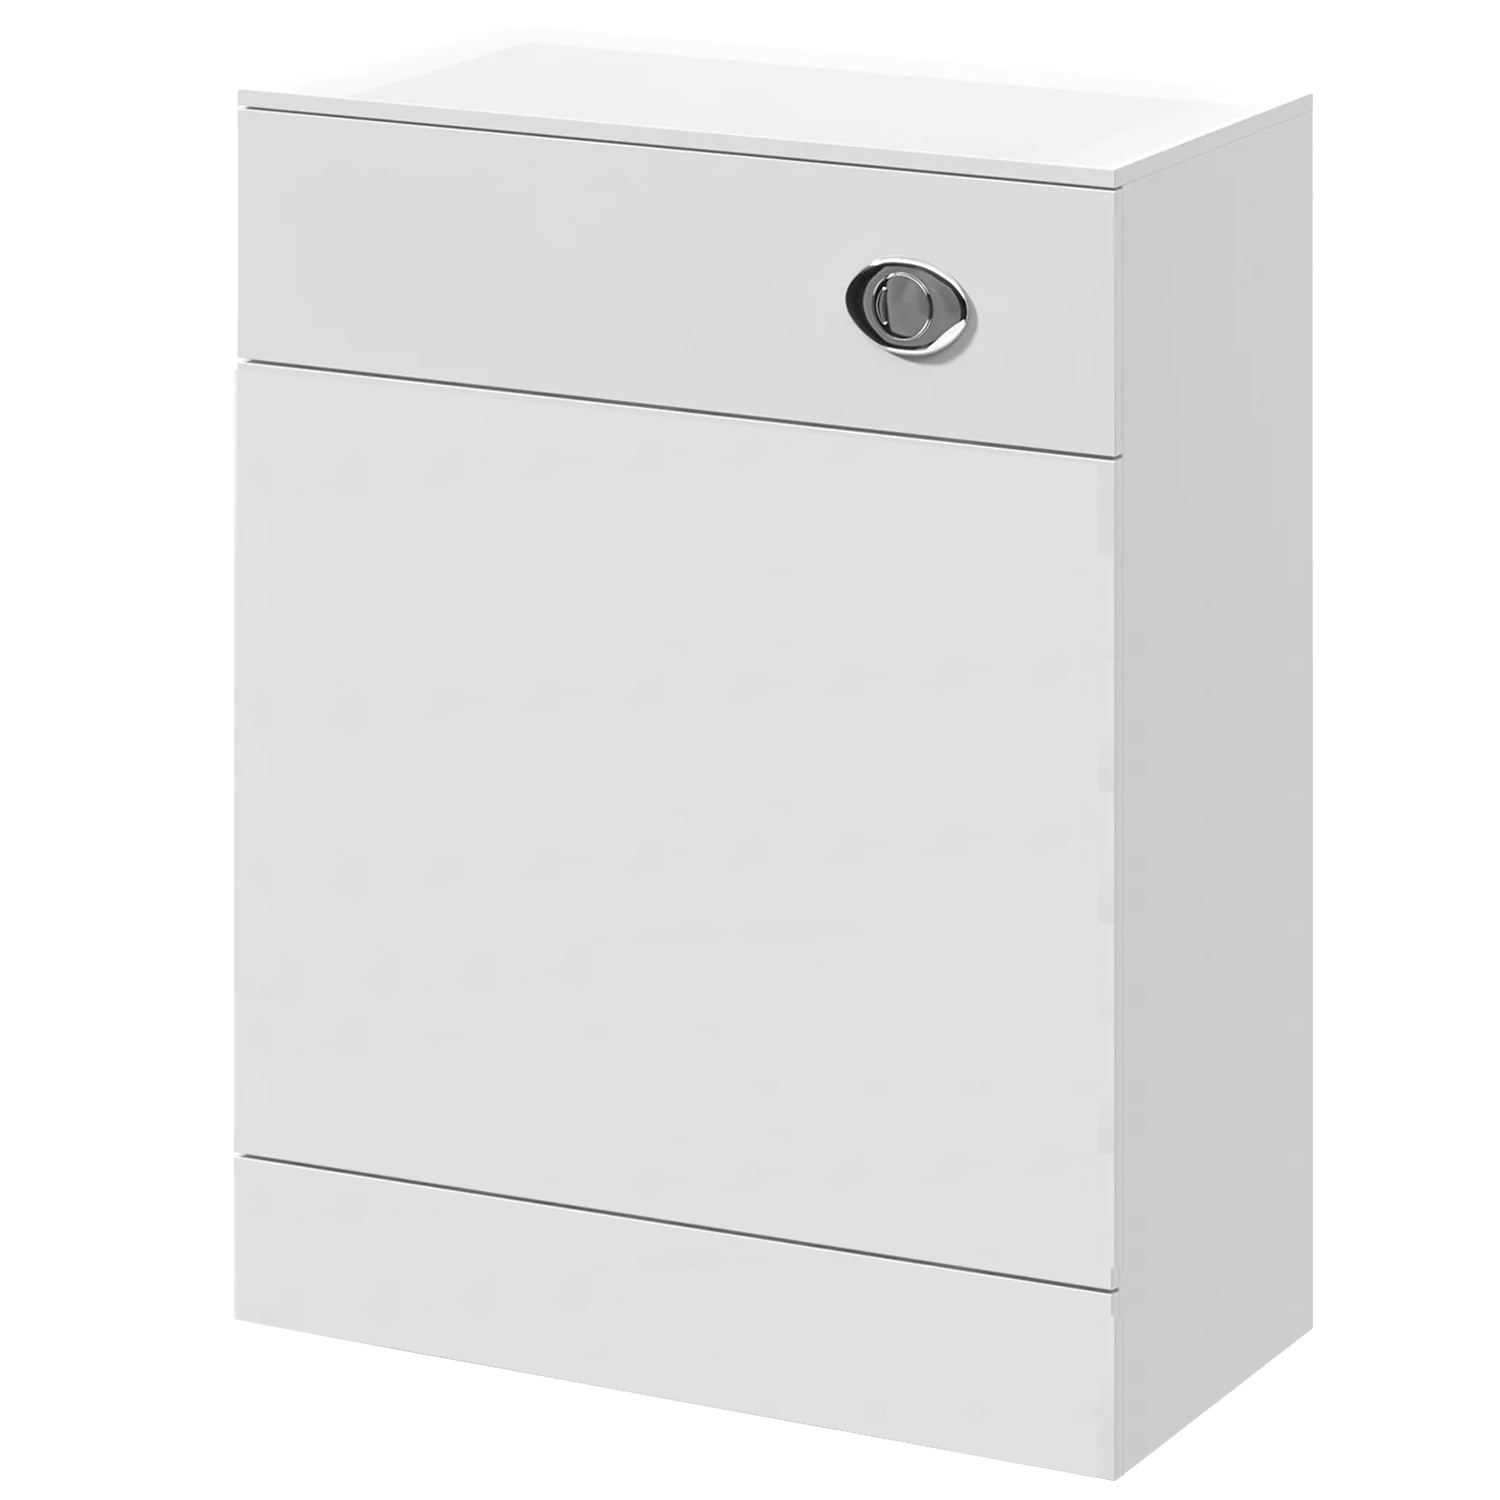 Premier Mayford Back to Wall WC Toilet Unit 500mm Wide x 330mm Deep - Gloss White